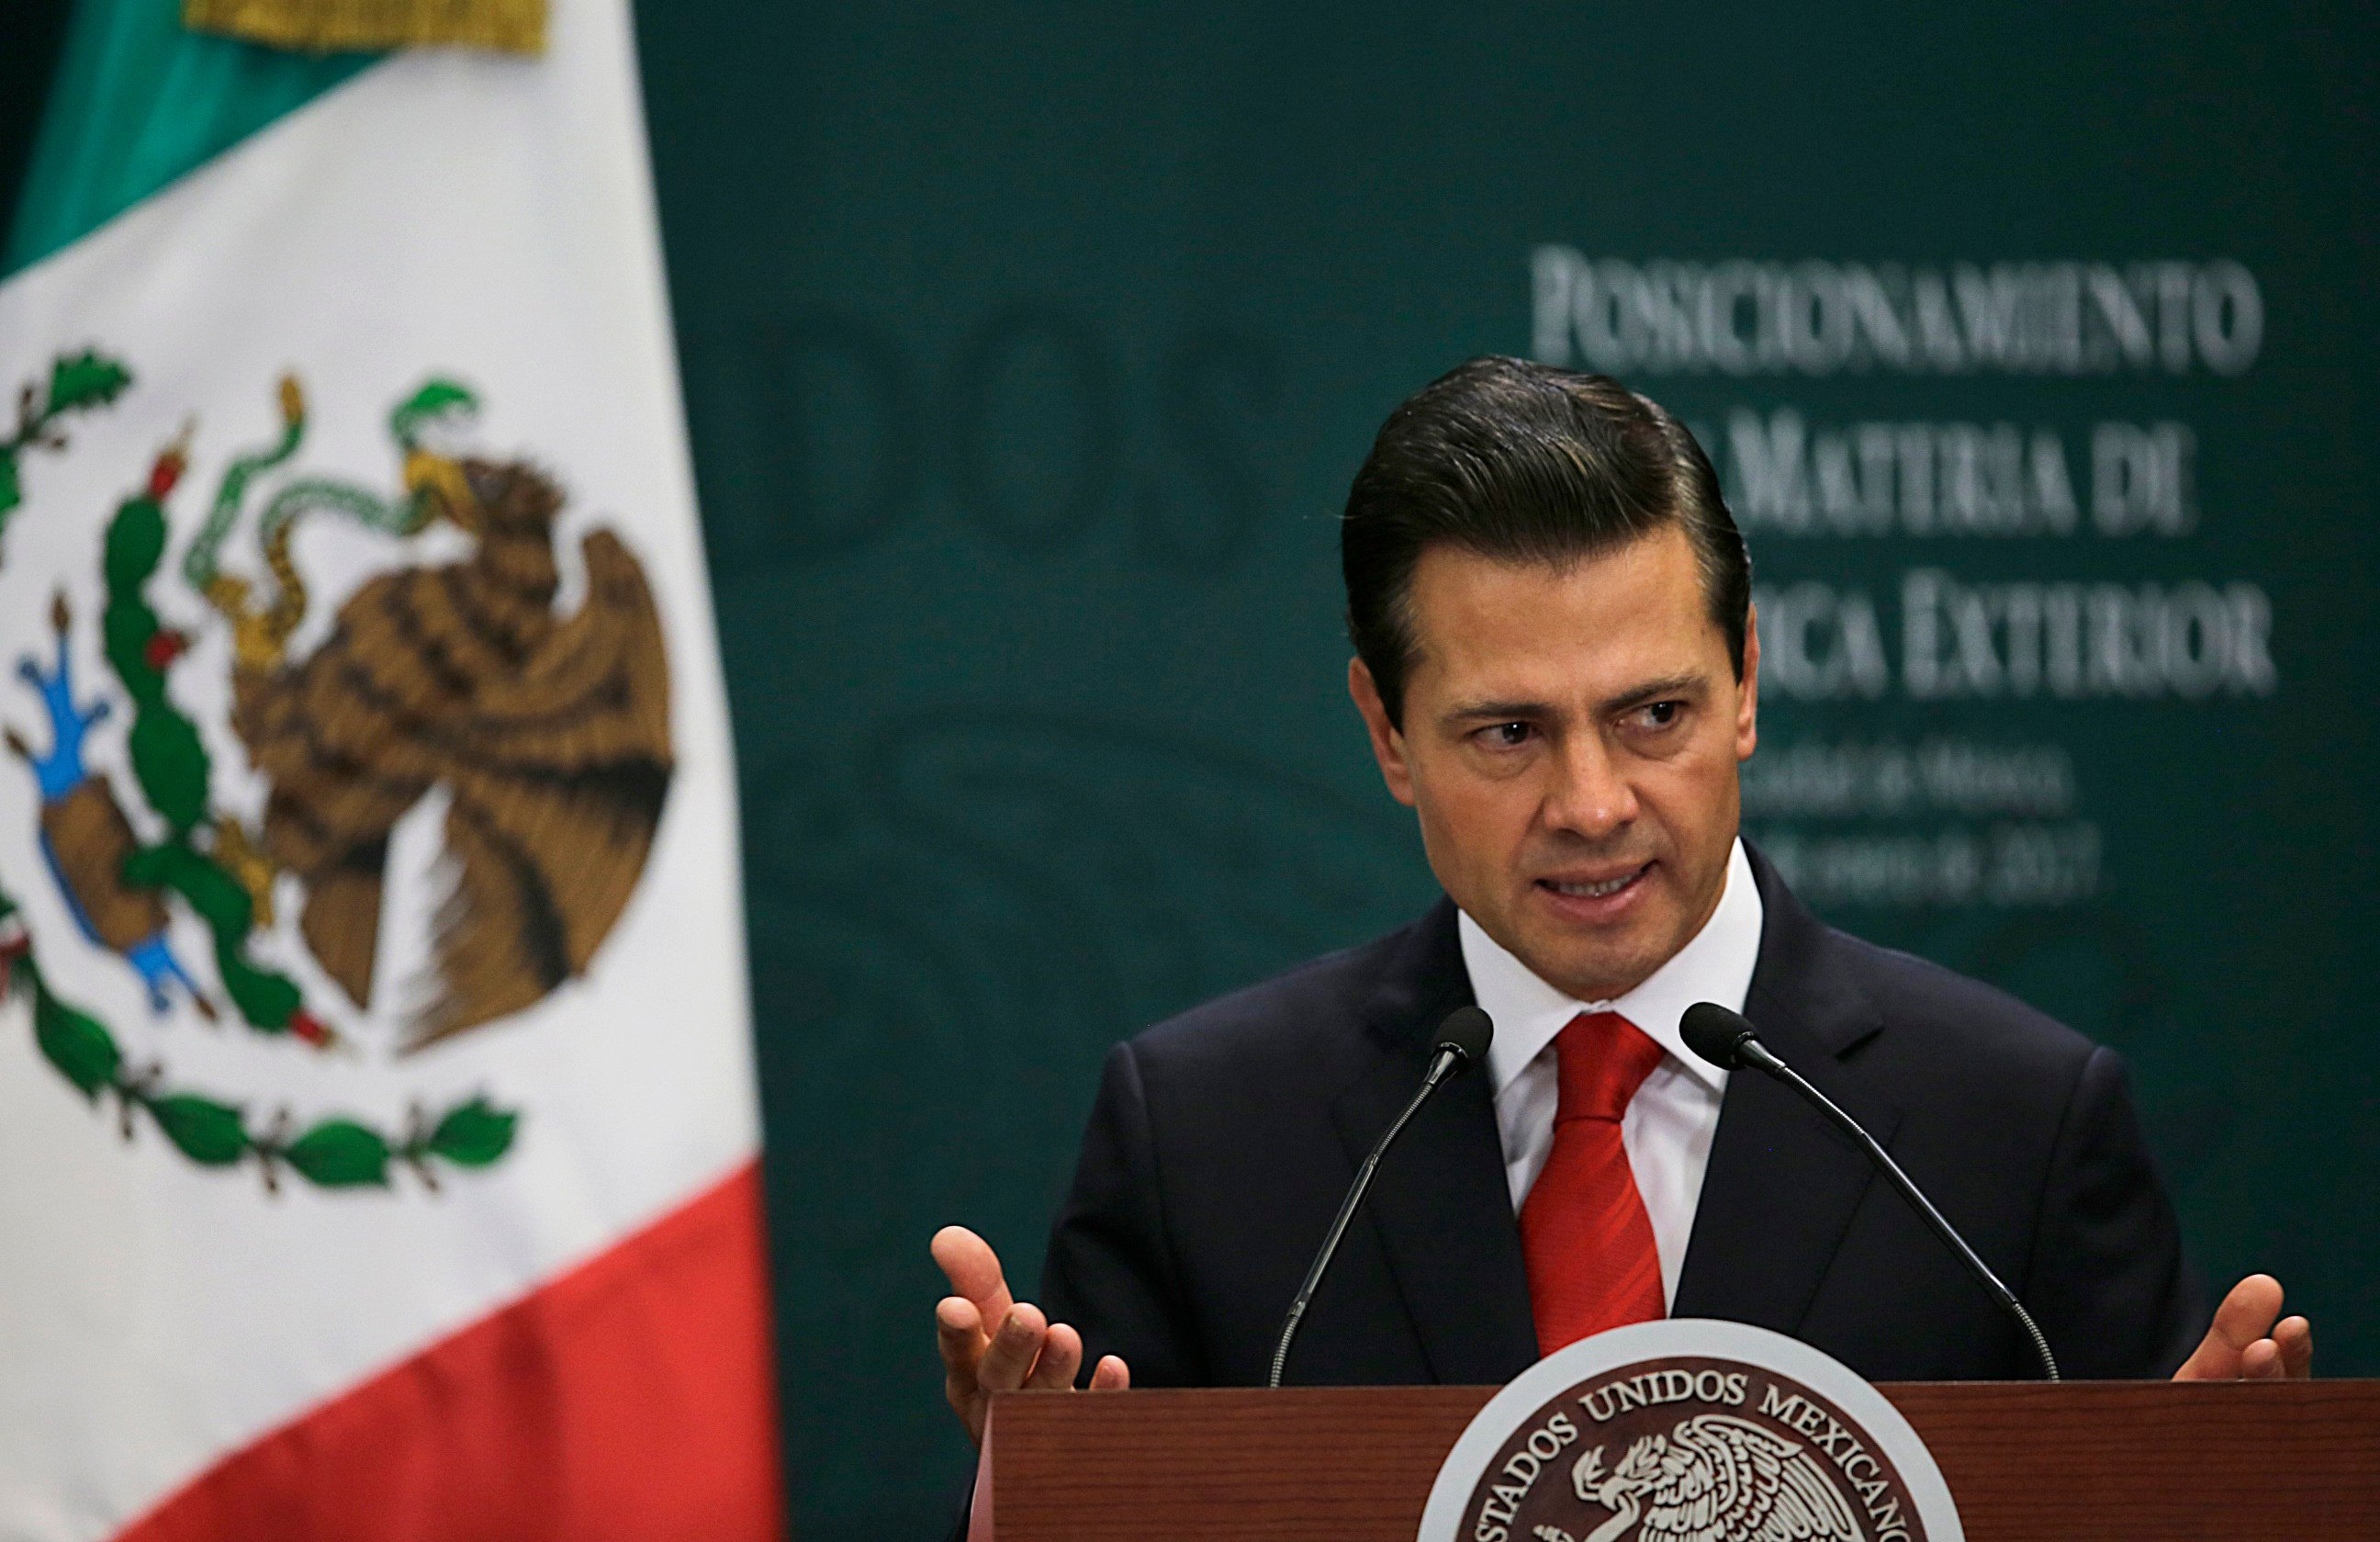 Pena Nieto said Monday that Mexico's attitude towards the Donald Trump administration should not be aggressive or biased, but one of dialogue. (AP Photo/Marco Ugarte)